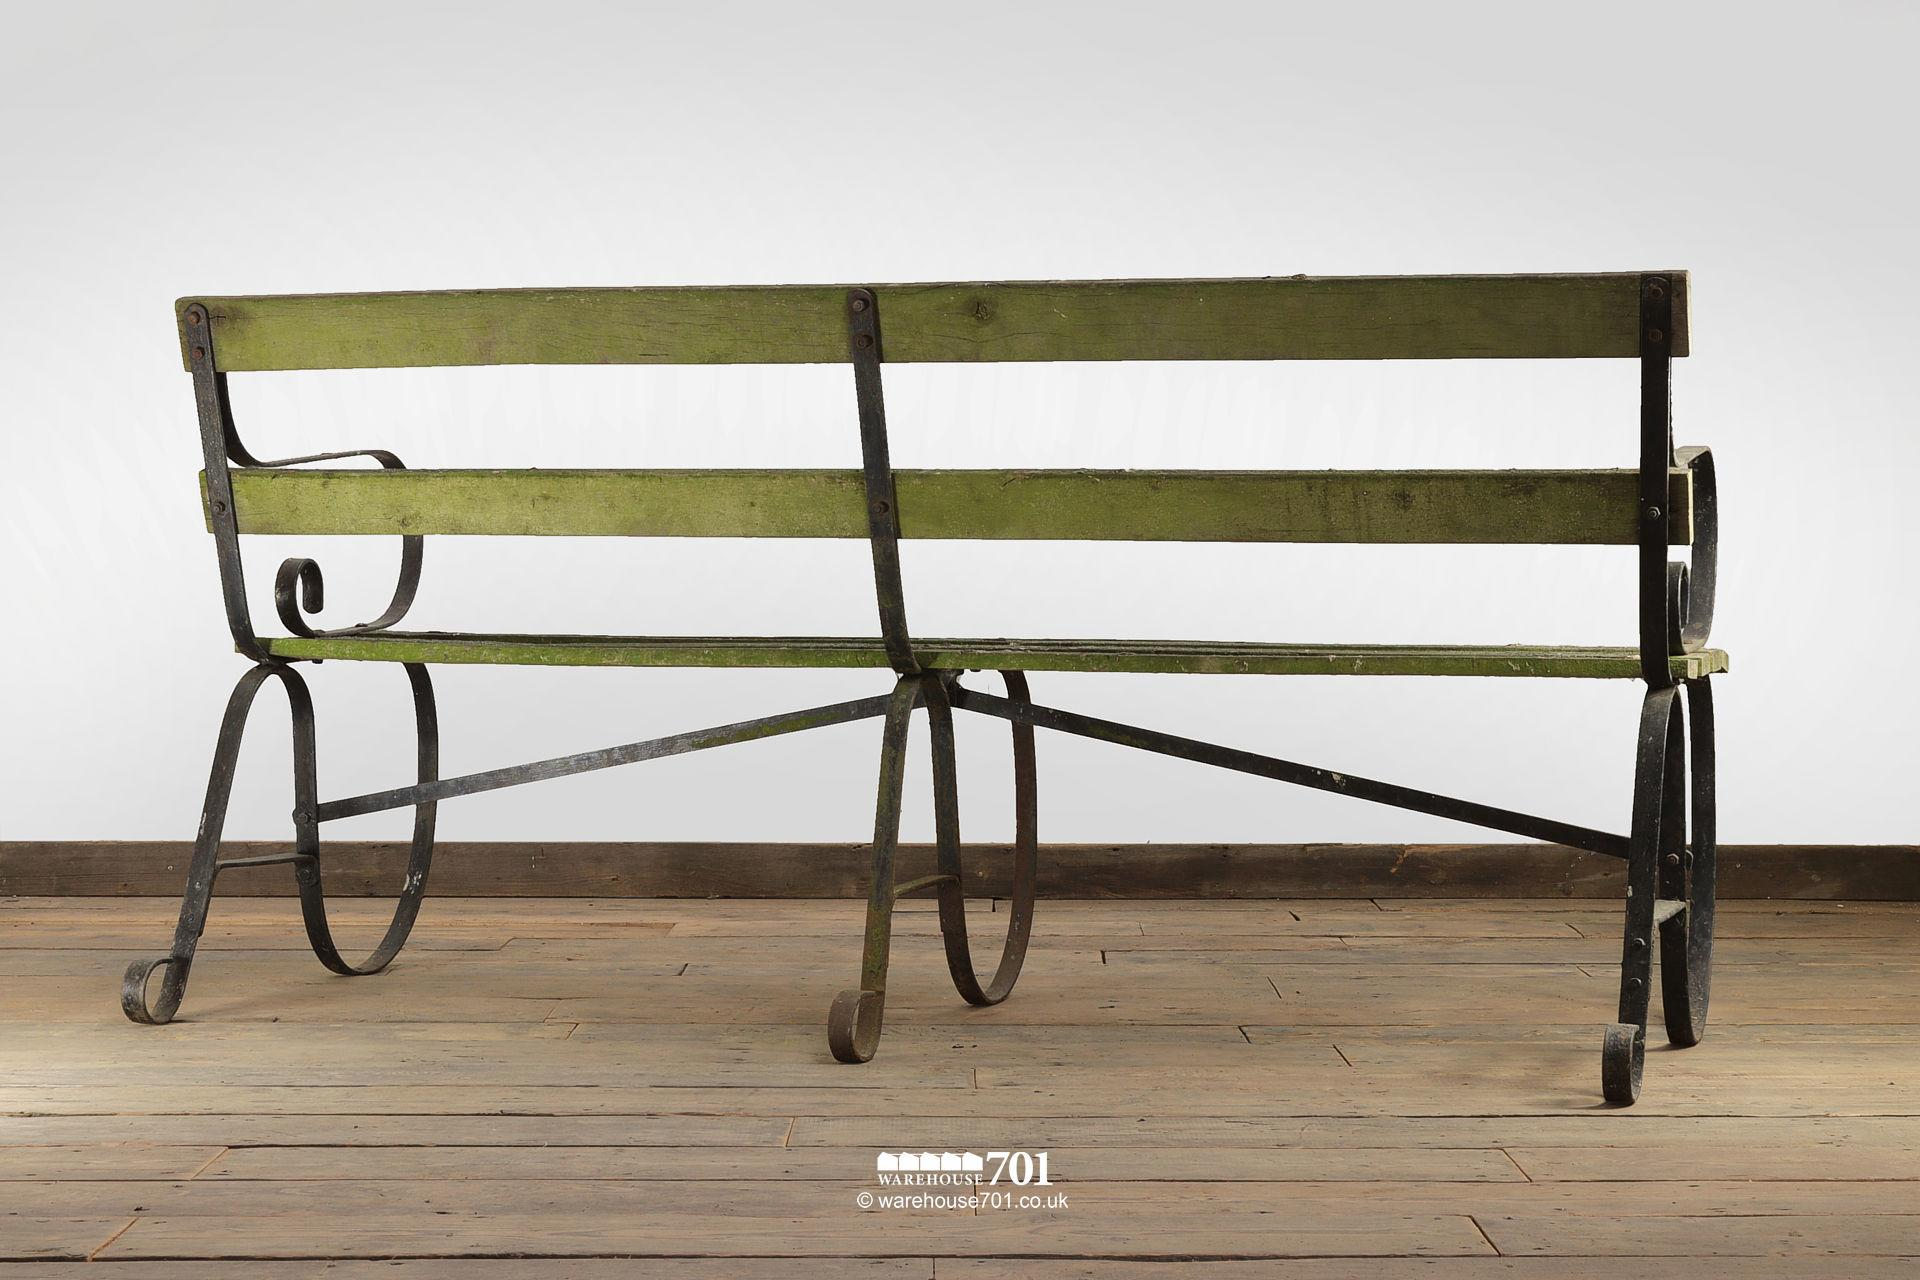 Lovely Old Long Wrought Iron Park or Garden Bench #5